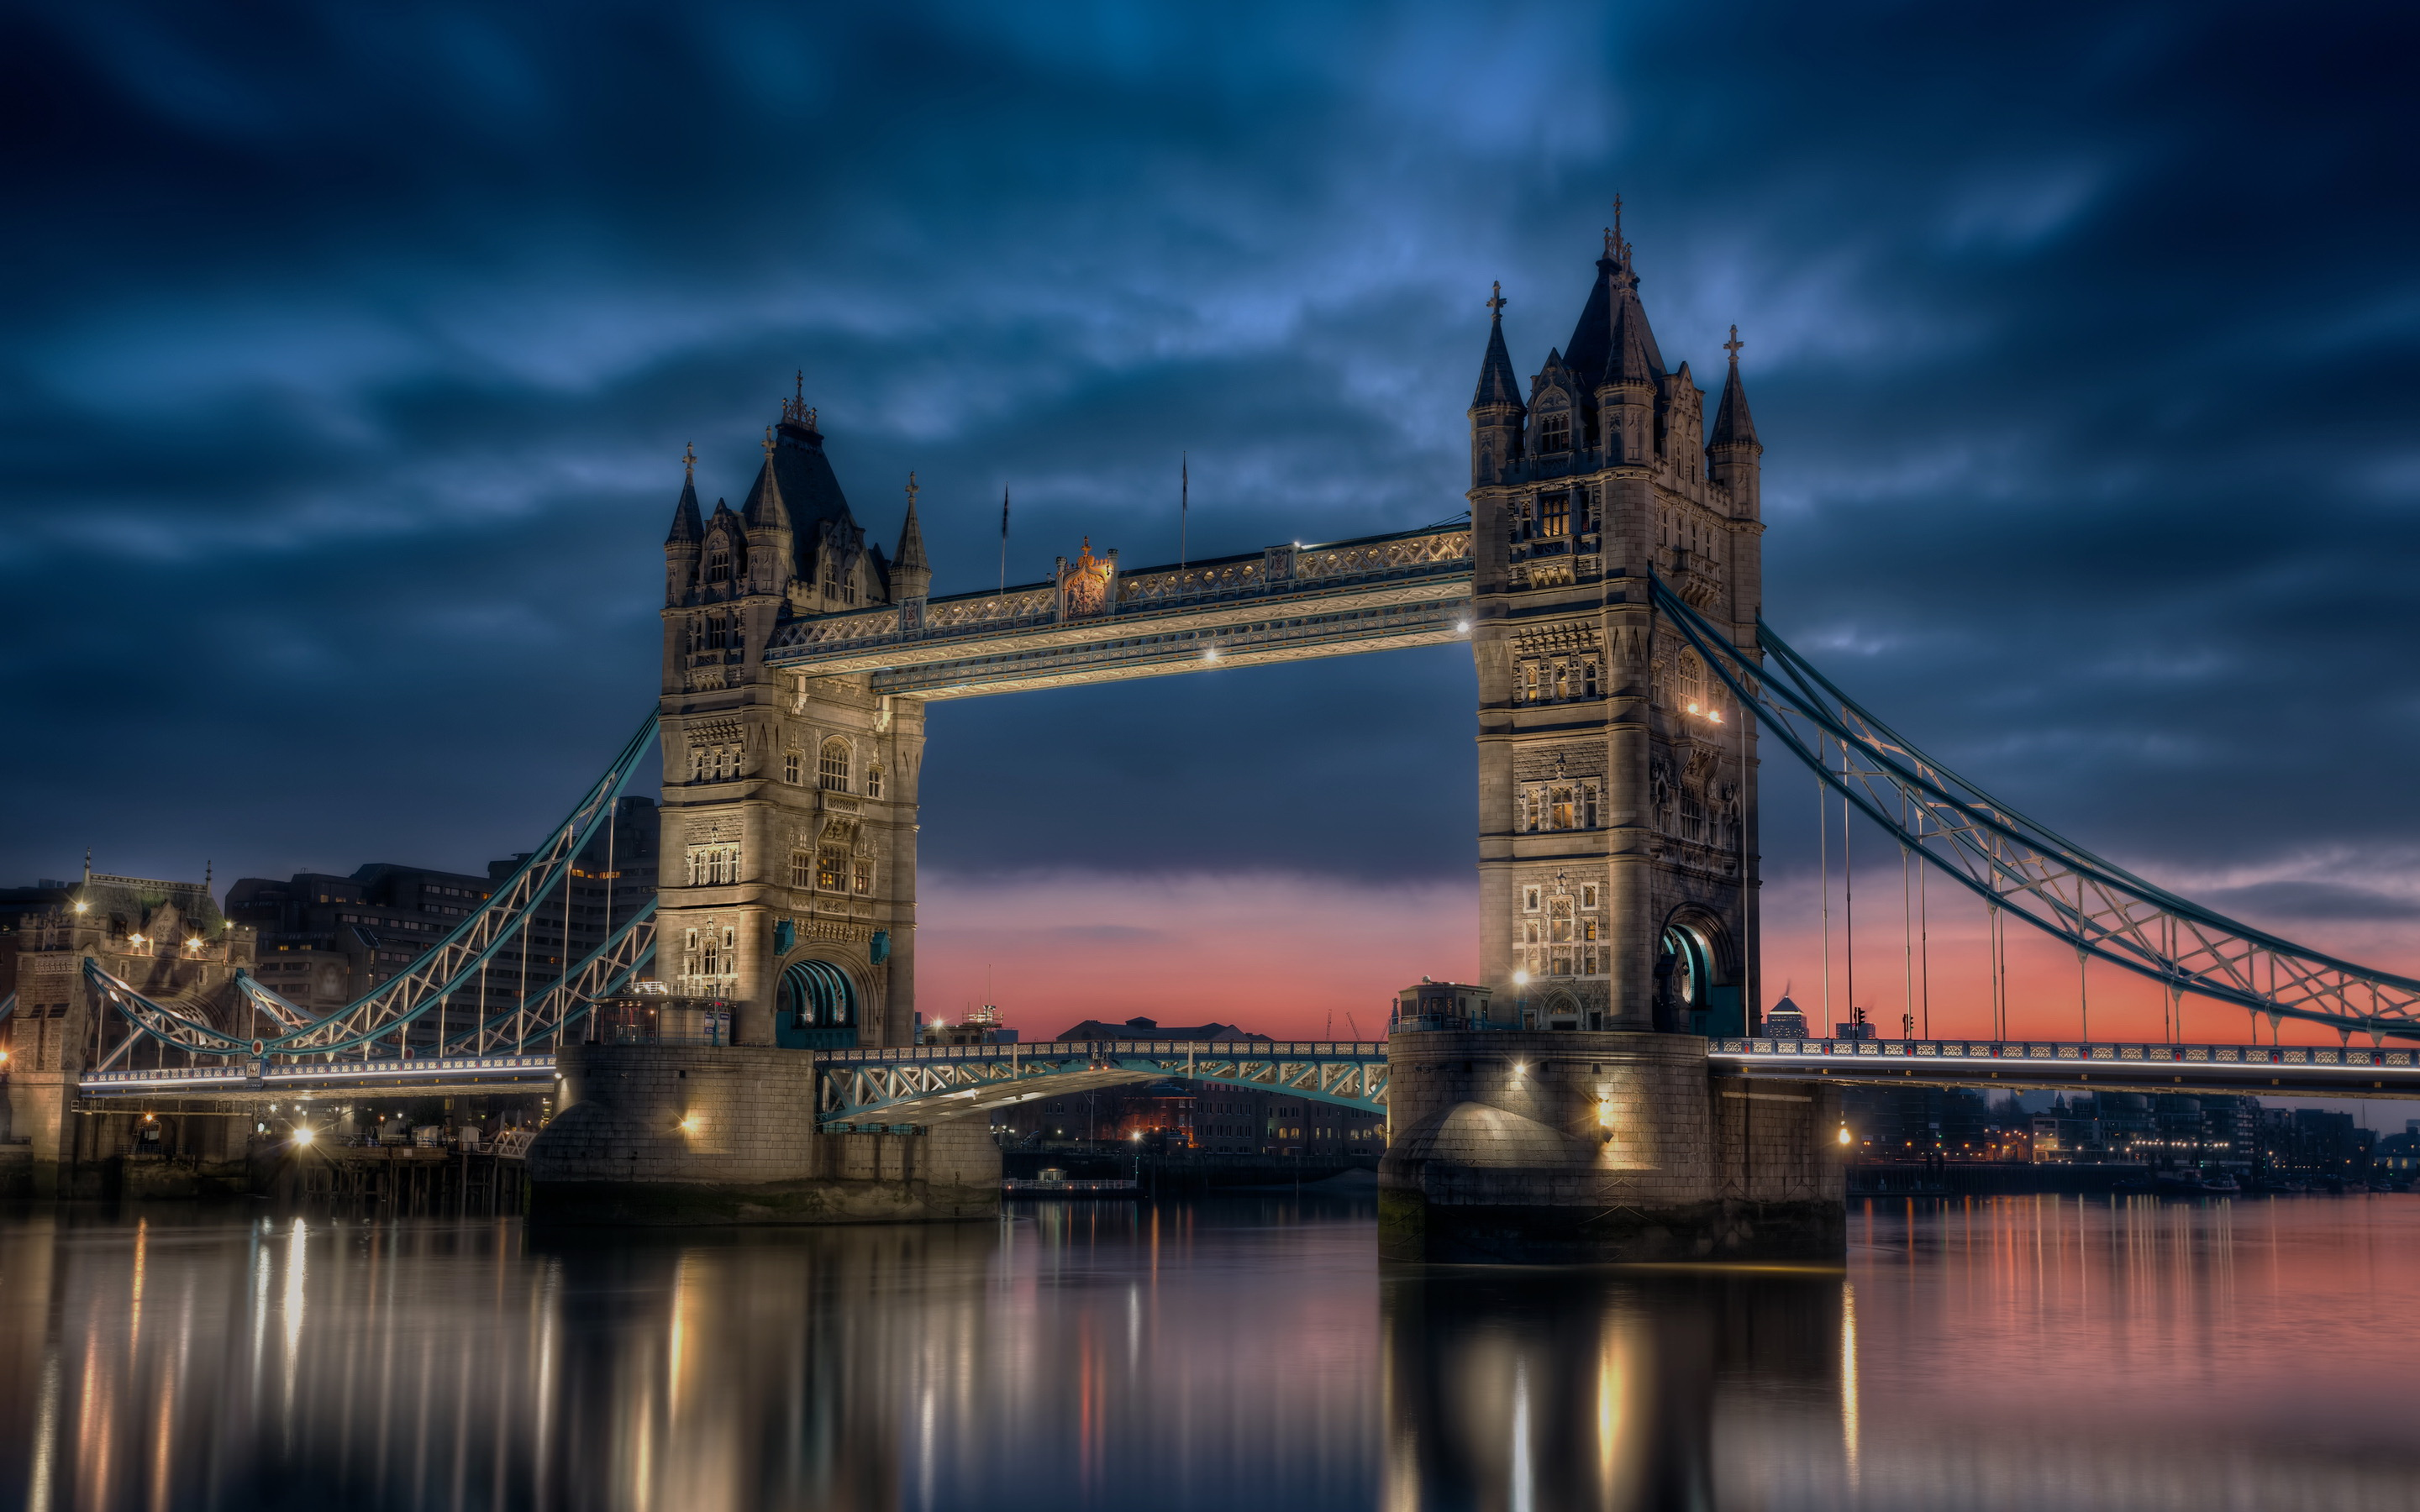 London Tower Bridge Wallpaper HD Wallpapersjpg 2880x1800